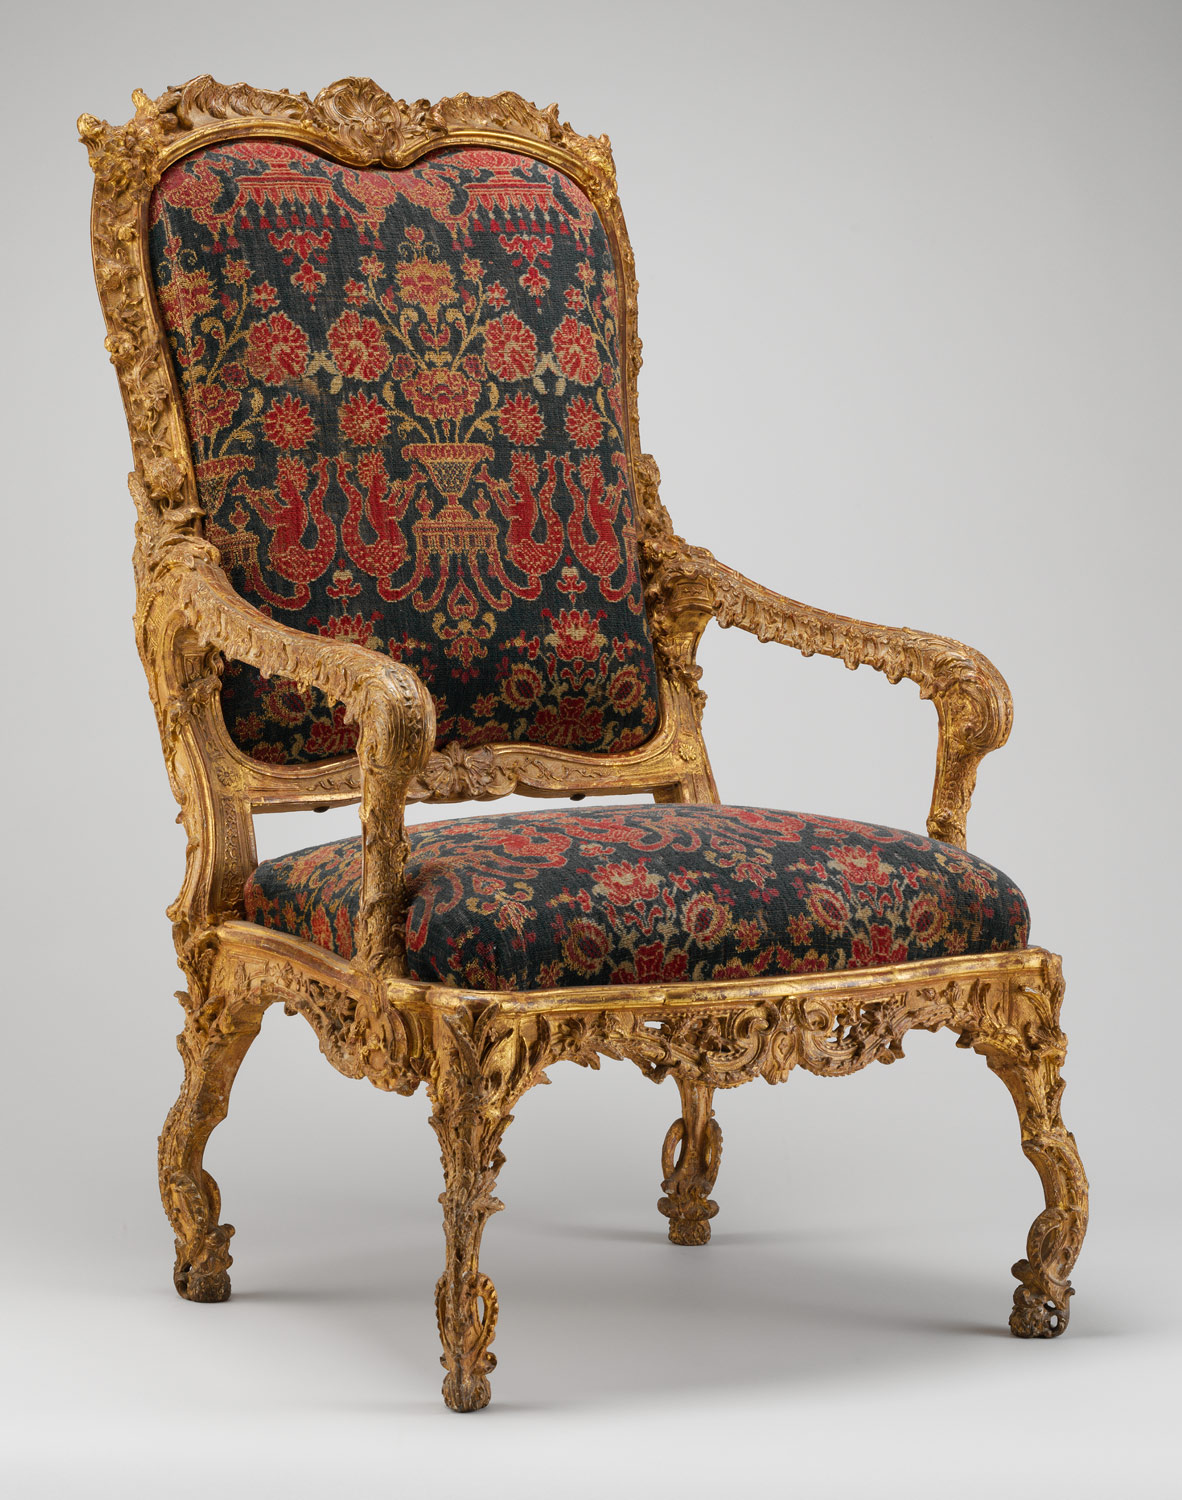 Fauteuils Baroques French Furniture In The Eighteenth Century Seat Furniture Essay